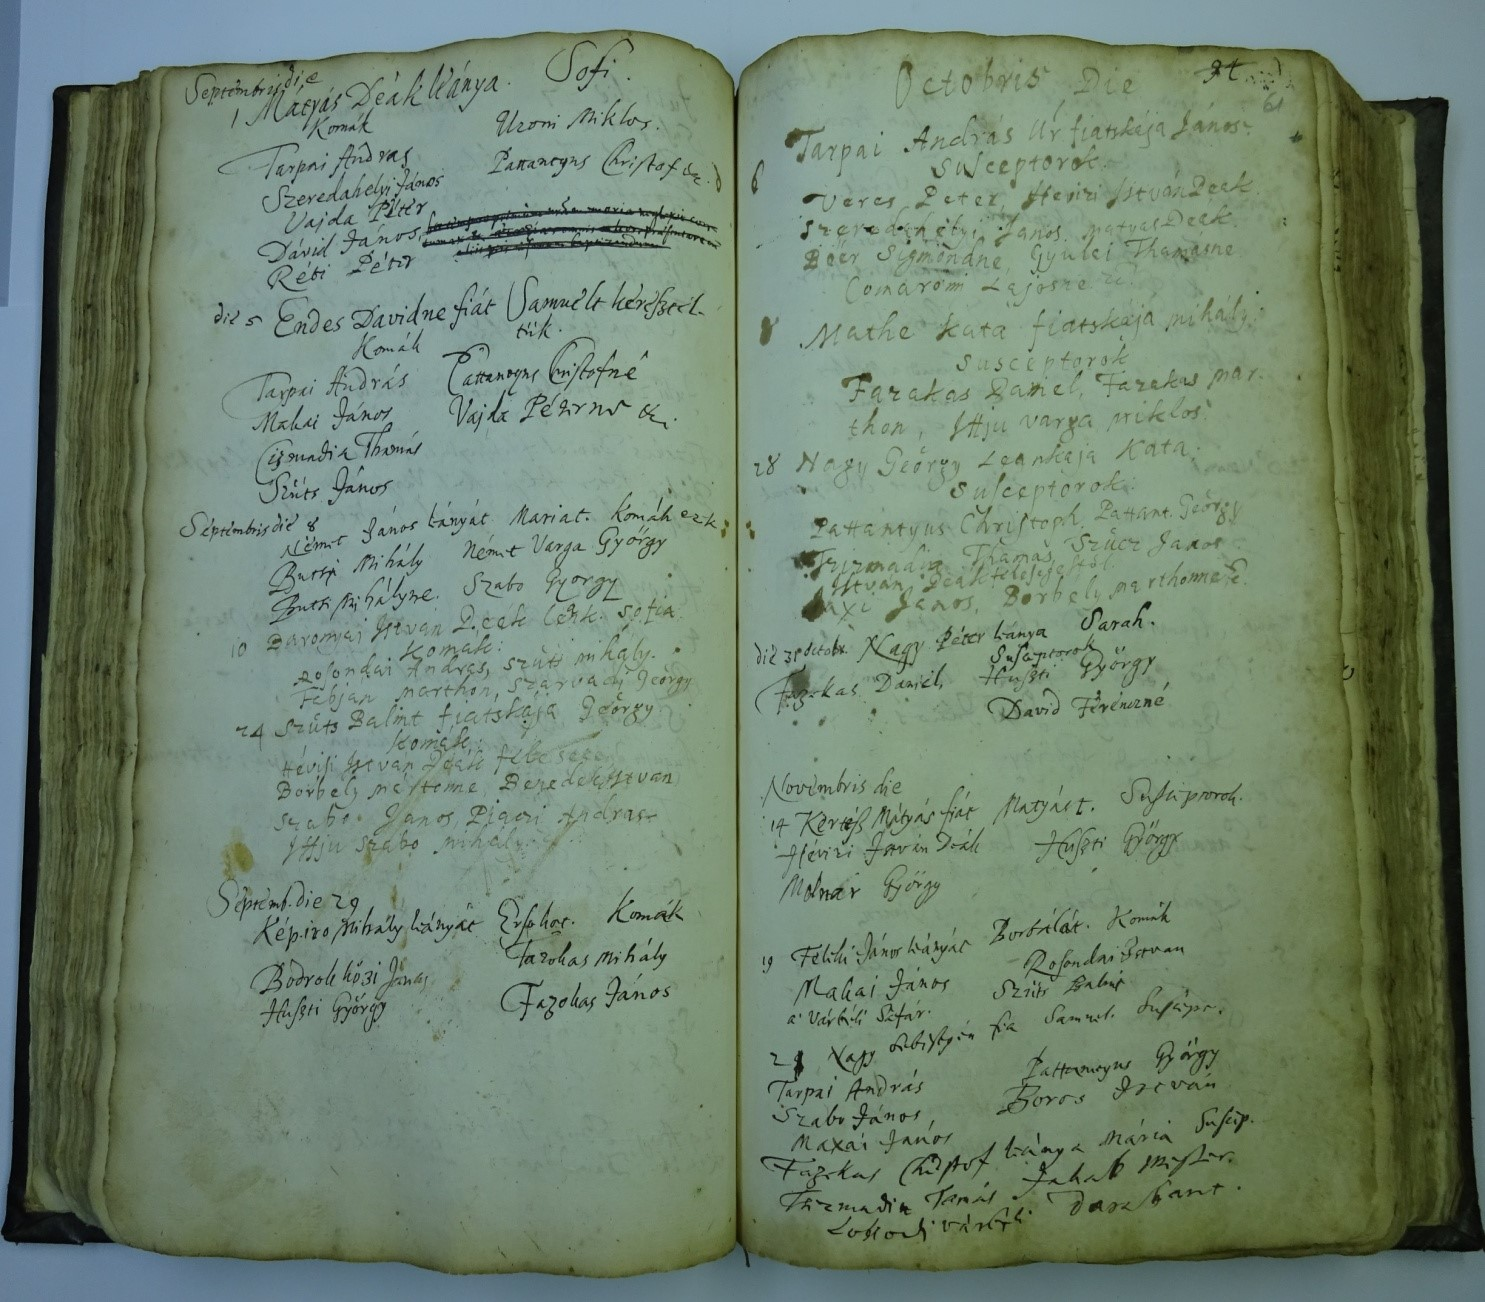 The Virtual Genealogical Archive: making available on-line the